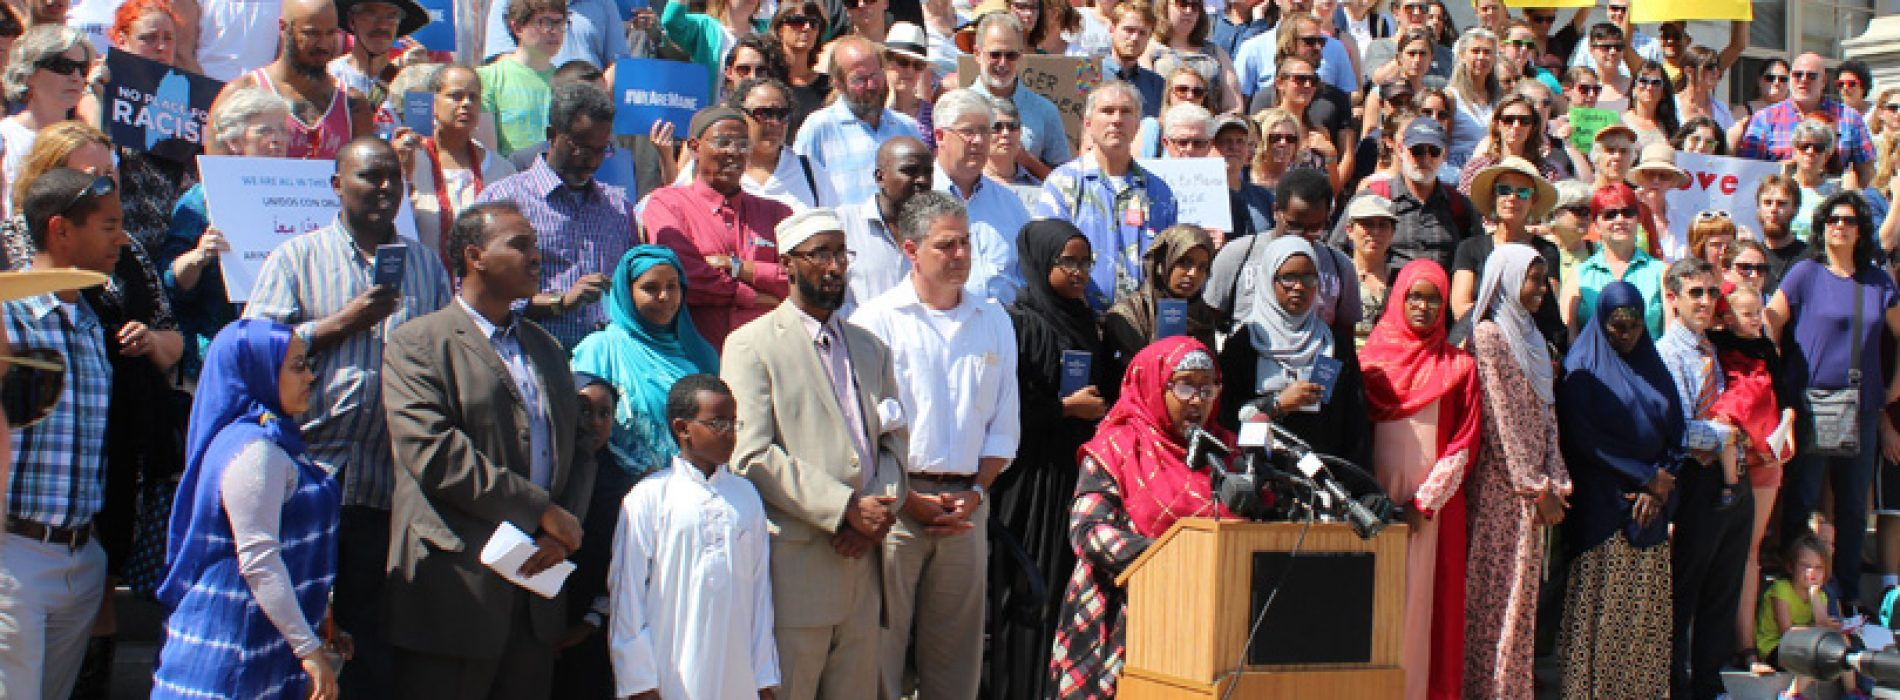 Hundreds stand with Mainers from Somalia, but some prominent Republicans refuse